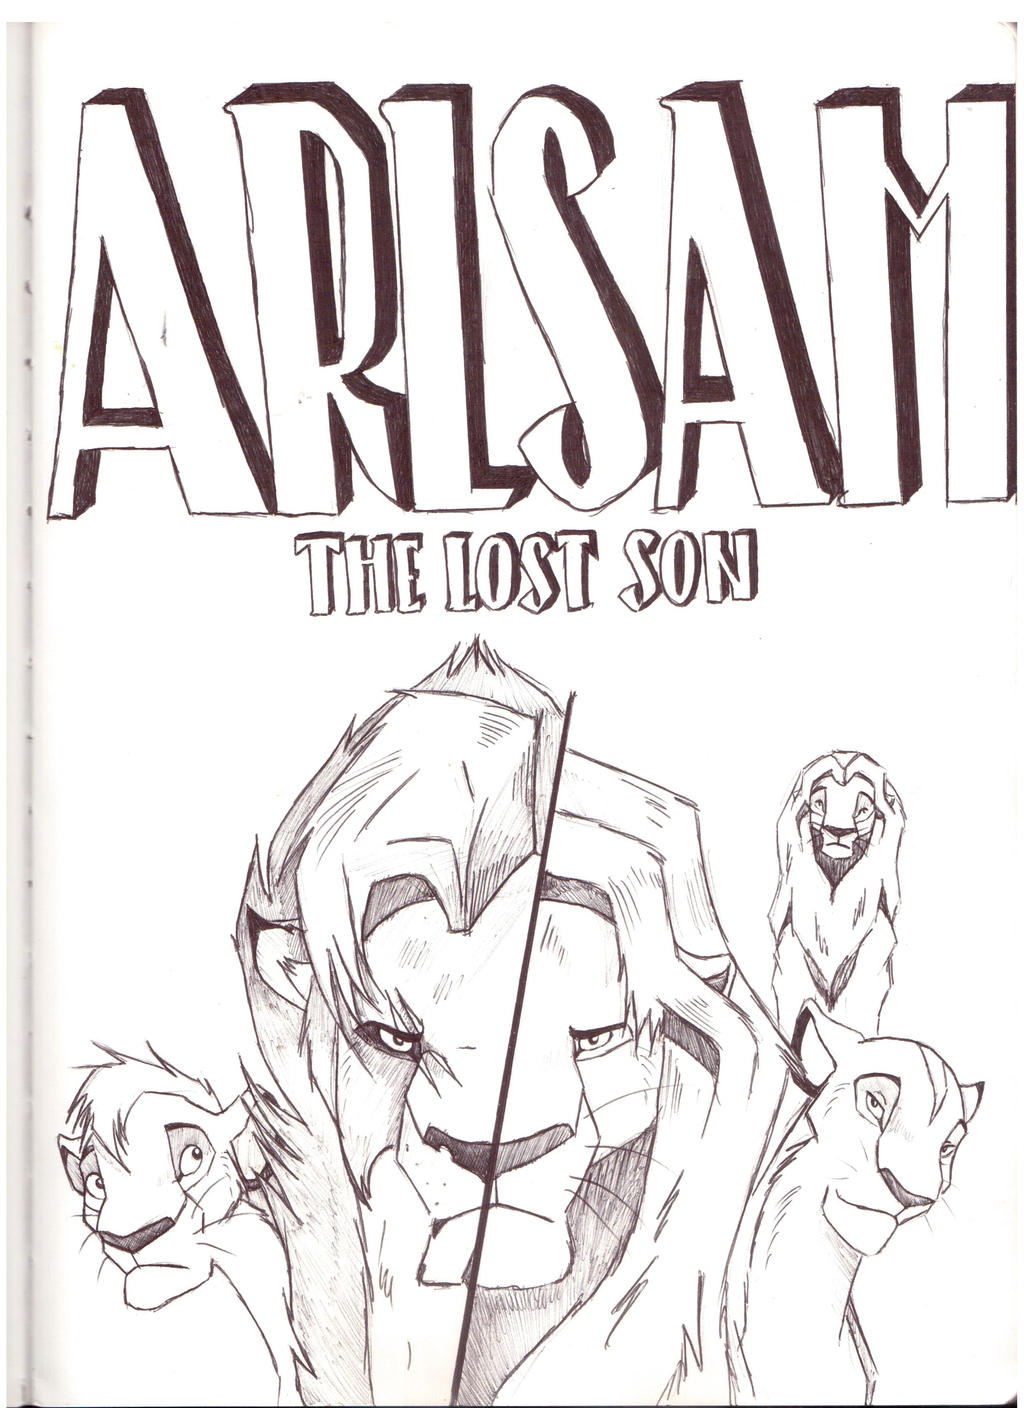 arlsam the lost son by tessaharmse on deviantart